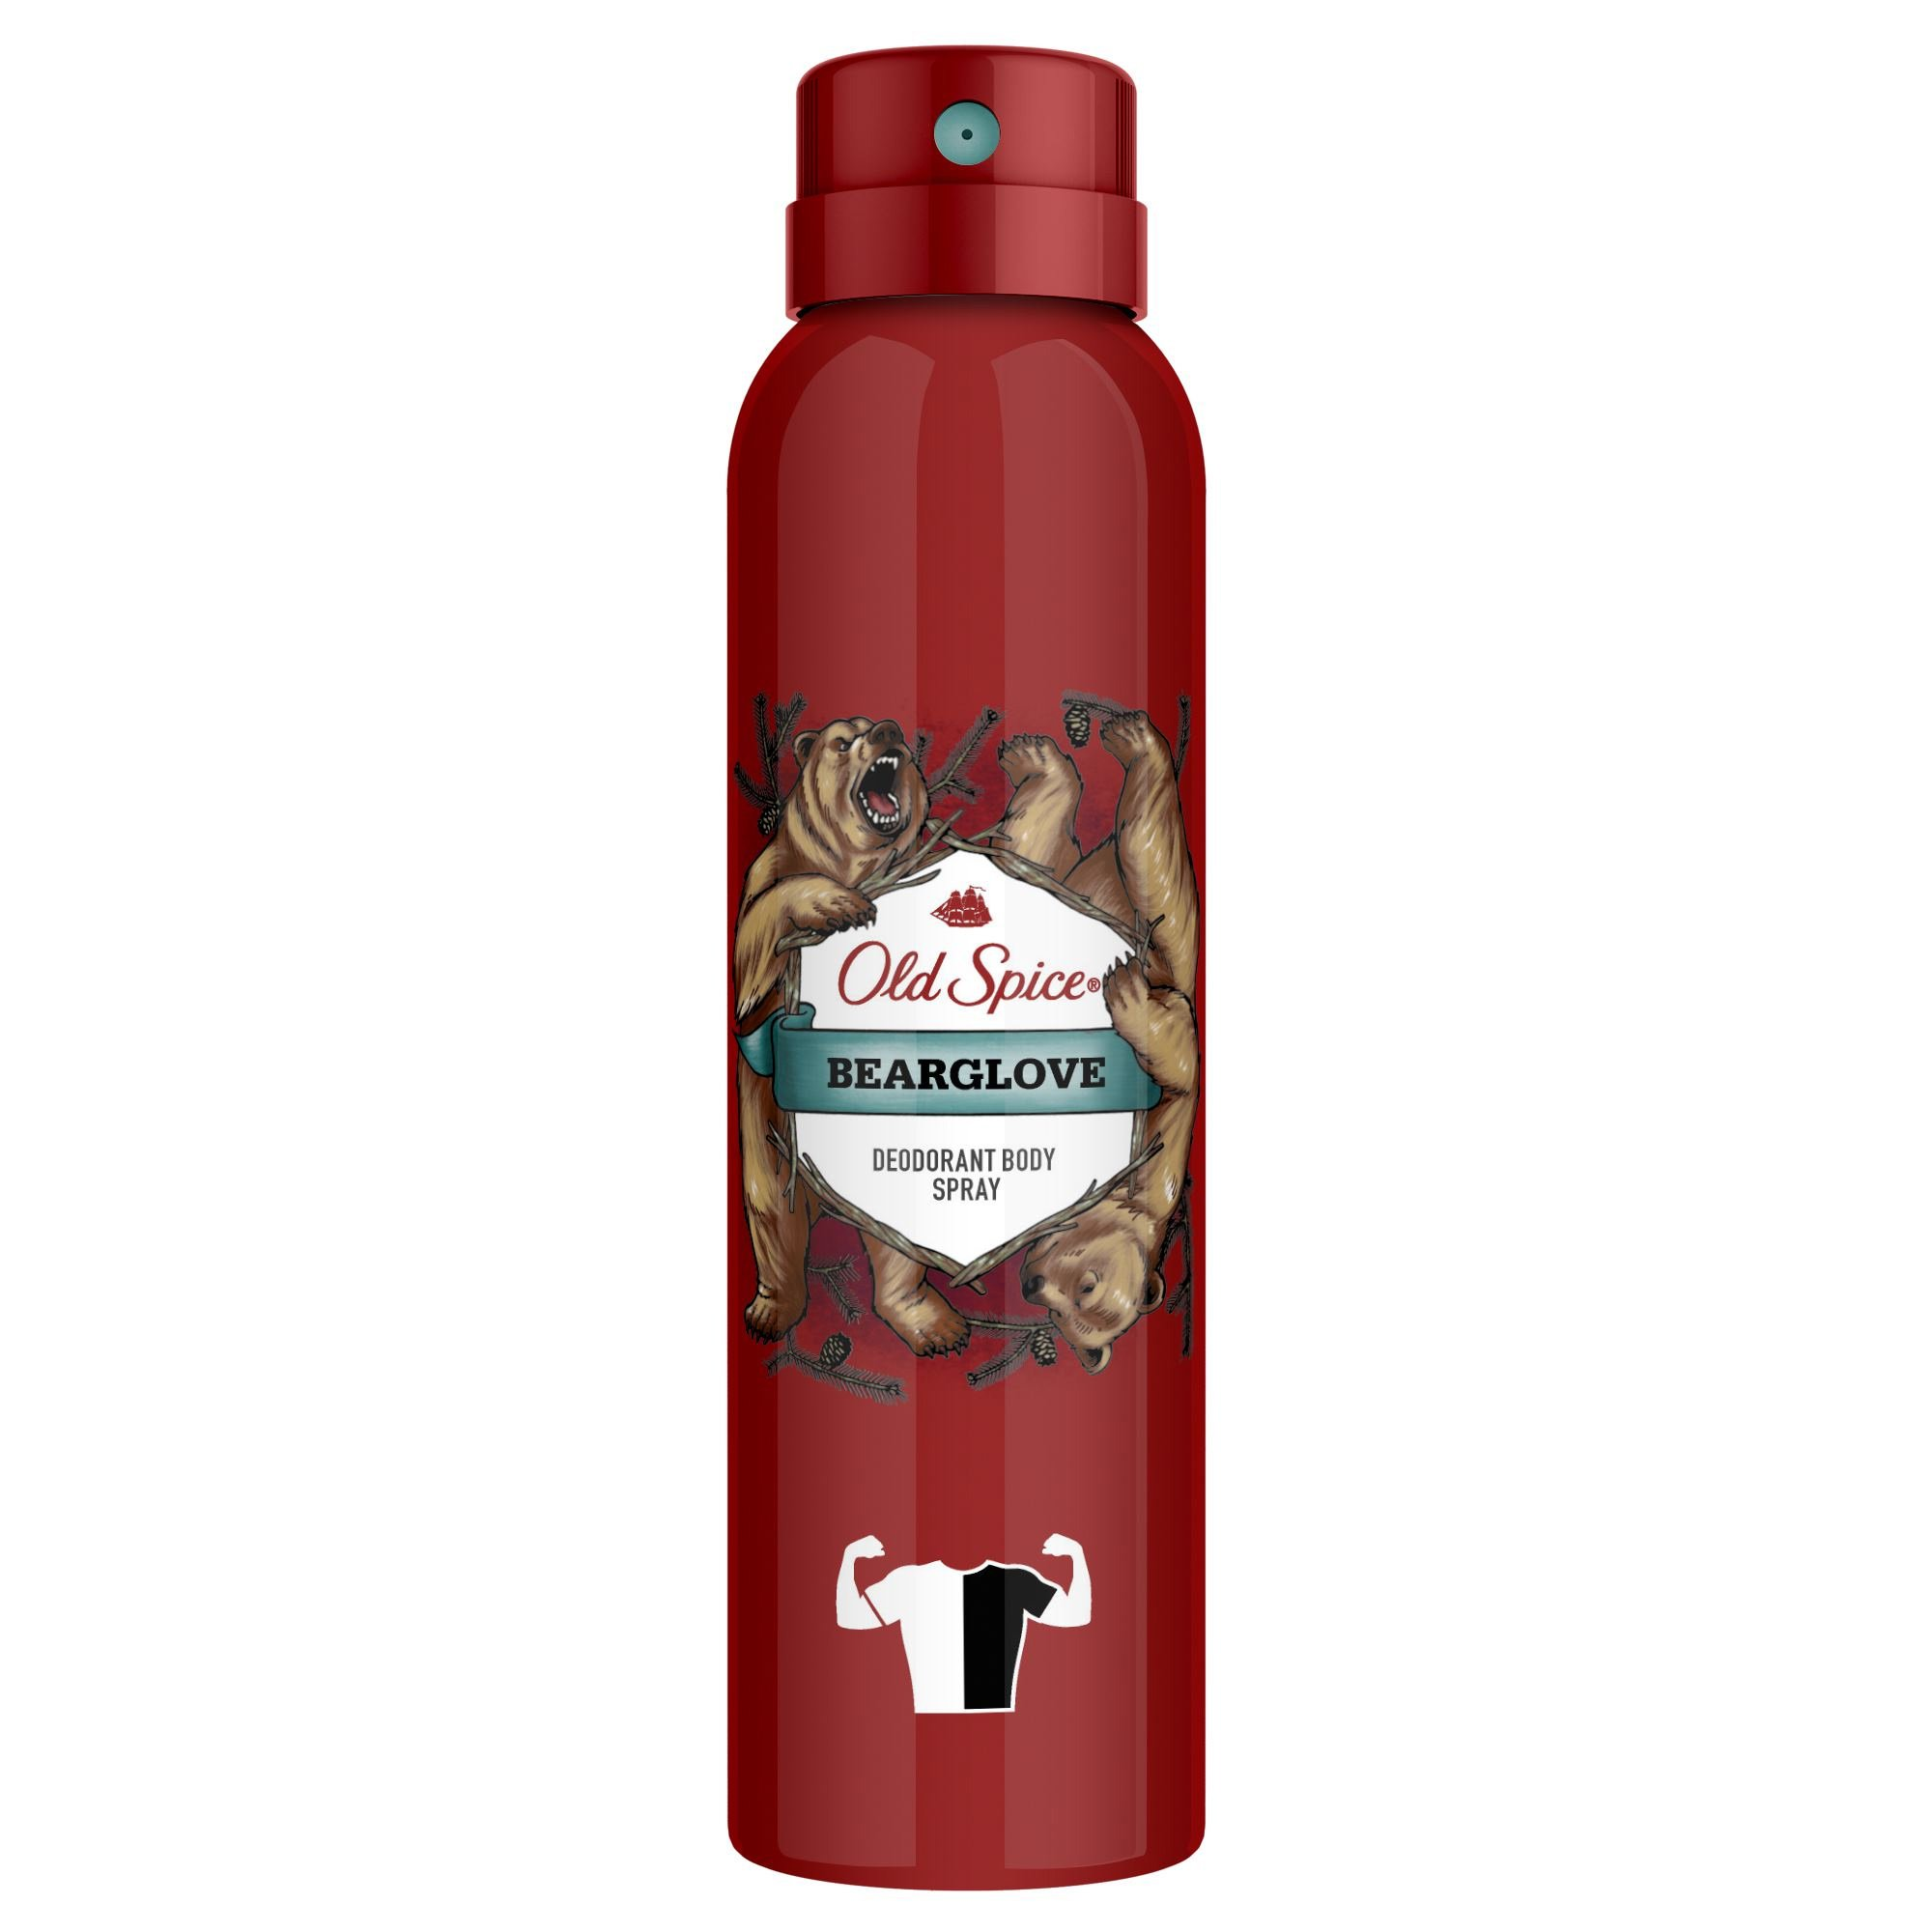 Old Spice Bearglove Body Spray Αποσμητικό Spray Σώματος 150ml